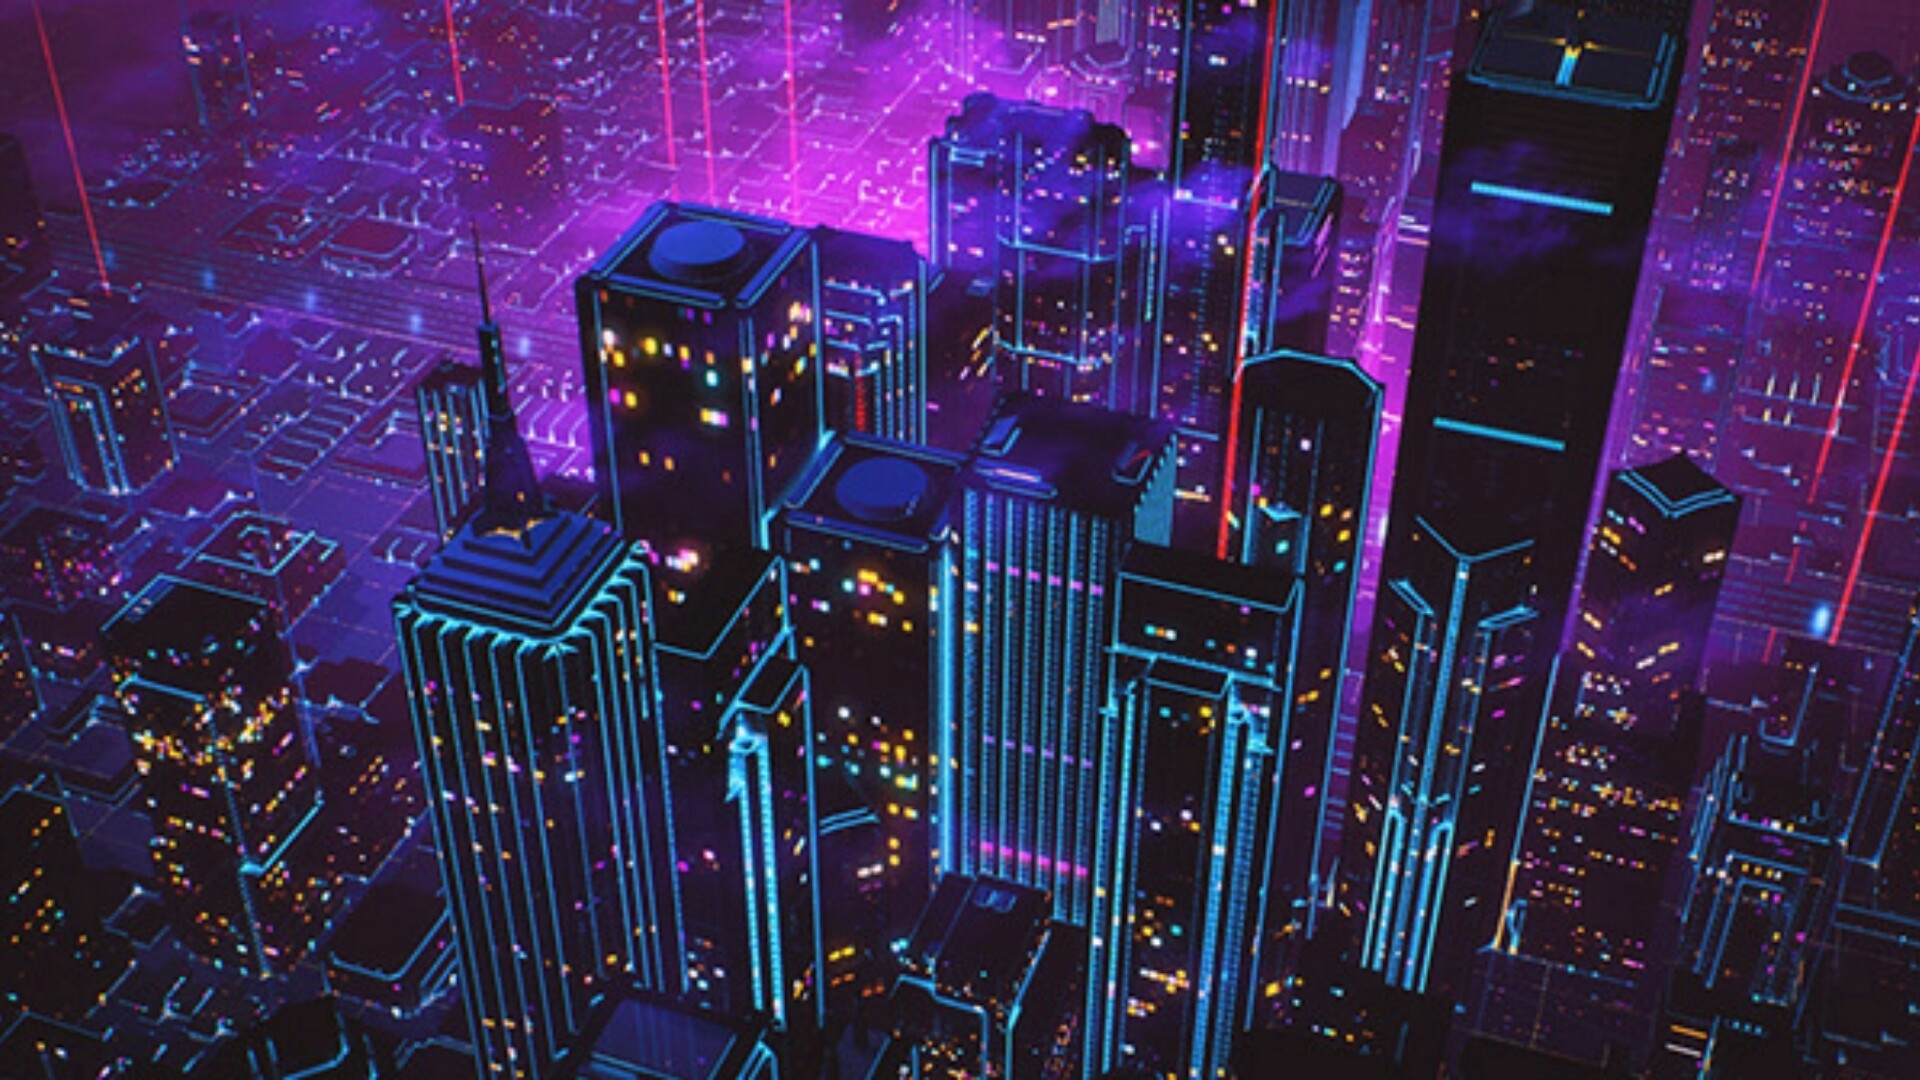 80s style retrowave neon artwork wallpaper | wallpaper studio 10